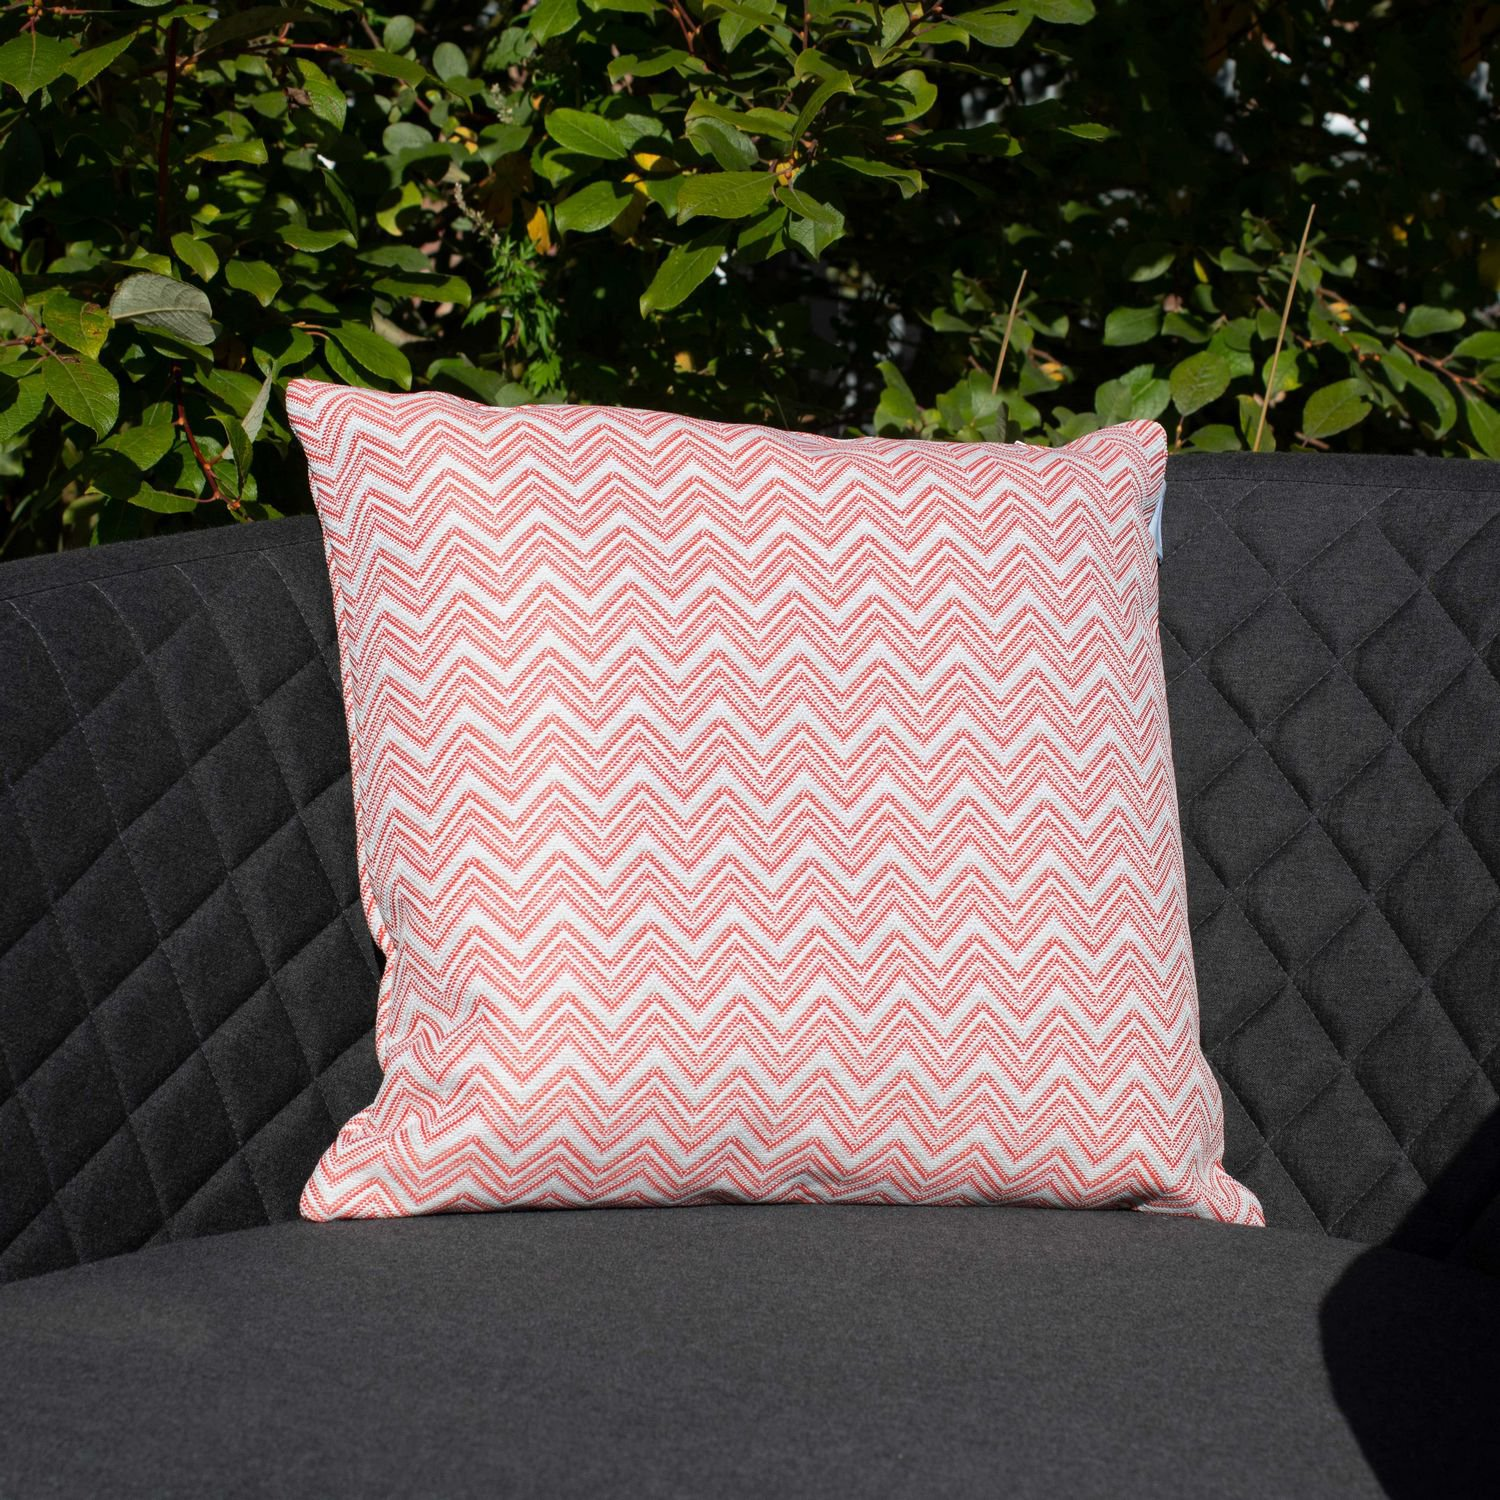 image-Maze Lounge Outdoor Fabric Scatter Cushion in Polines Red Pair